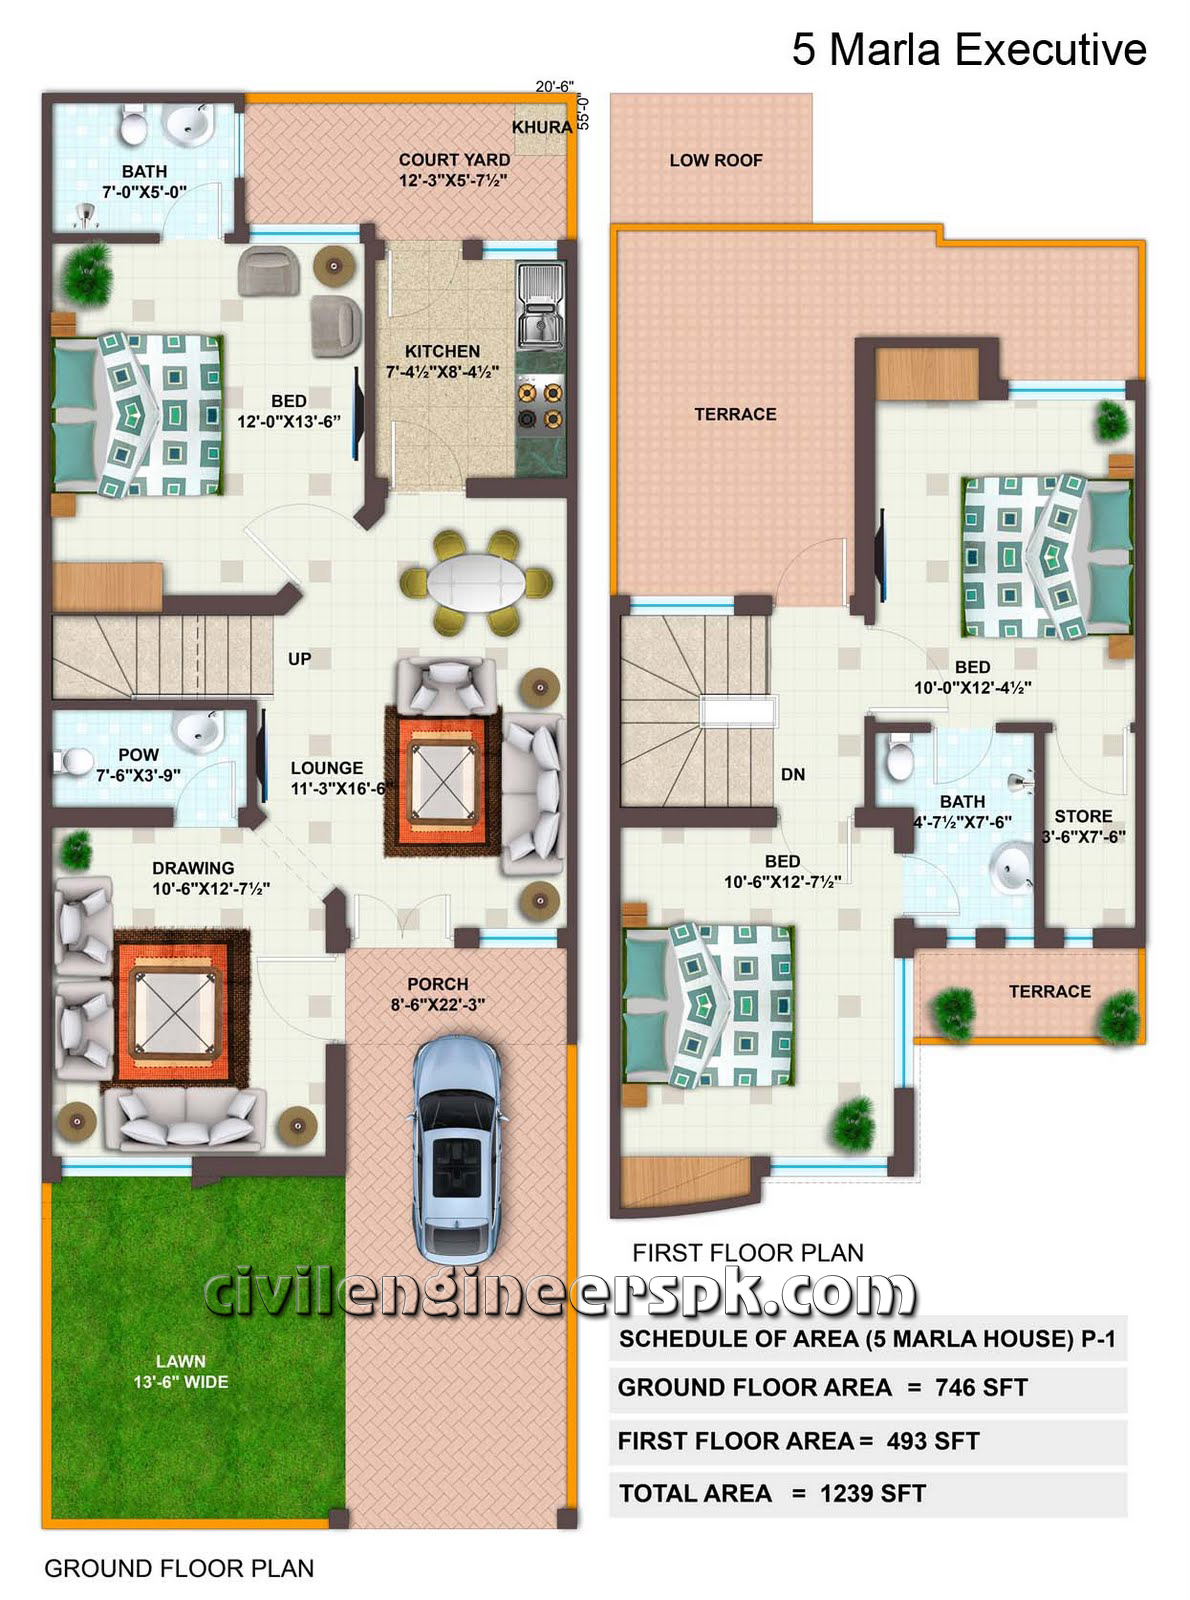 5 marla house floor plan